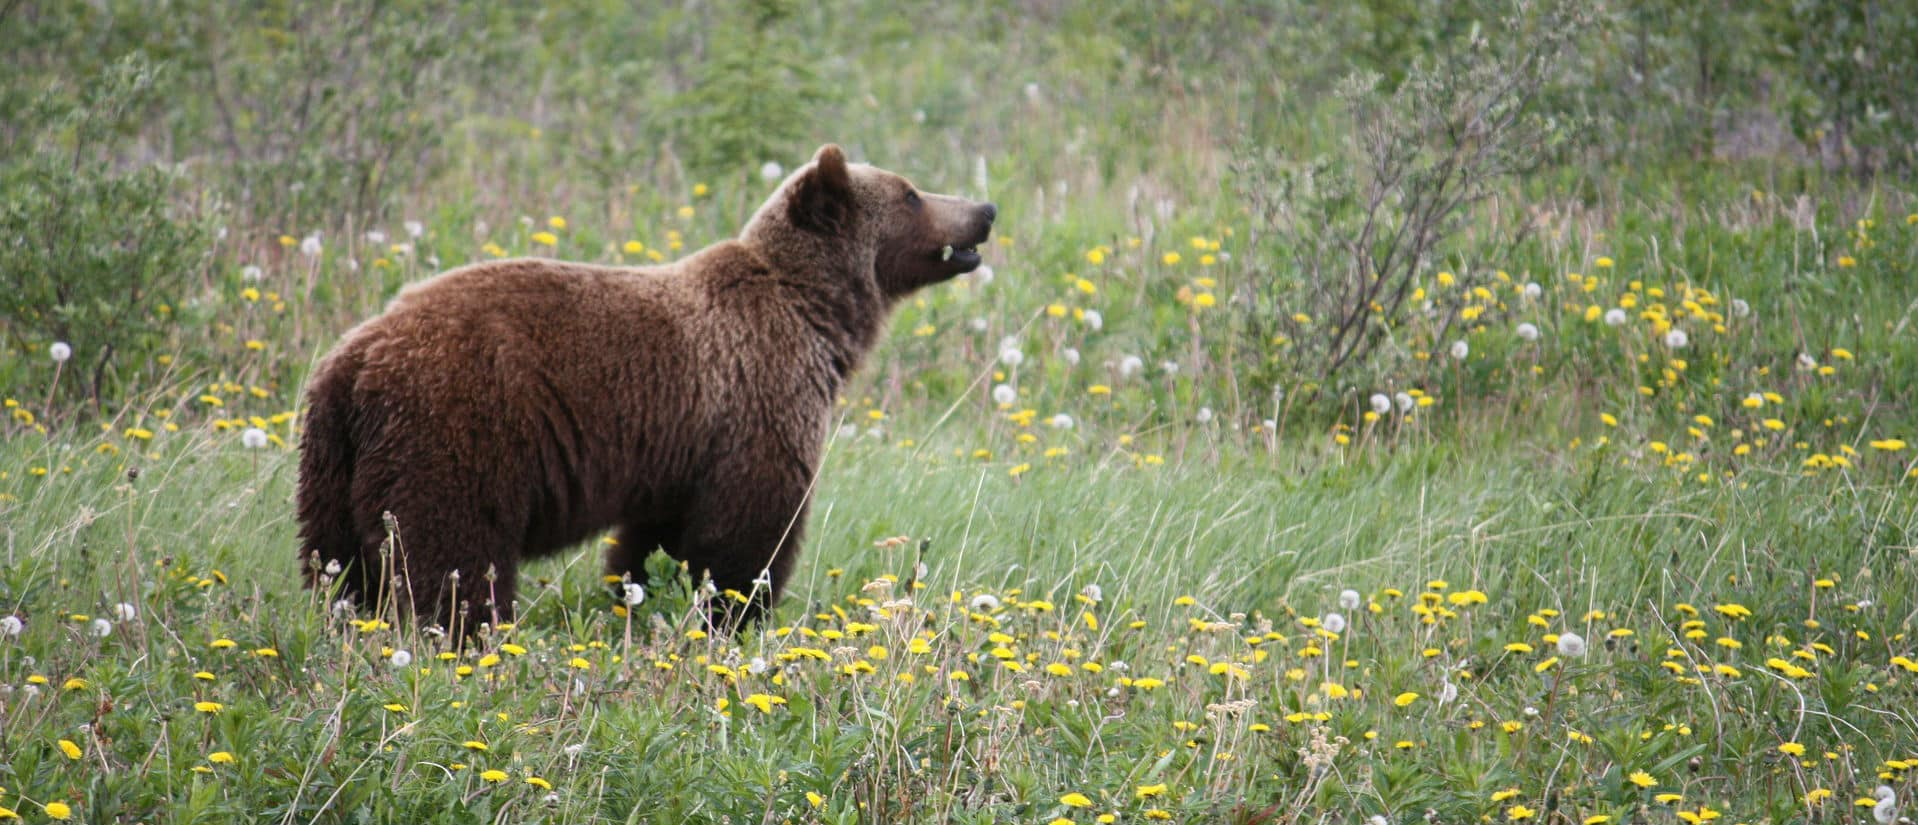 grizzly berenseizoen Banff National Park